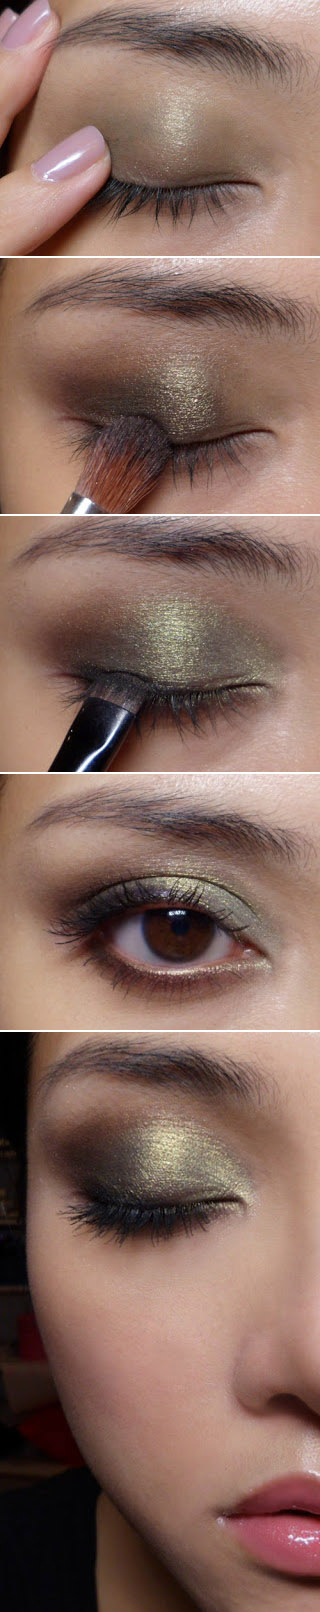 Make-up for eyes in golden-olive colors Makeup Tutorial for Glamorous and Dramatic Holiday Looks